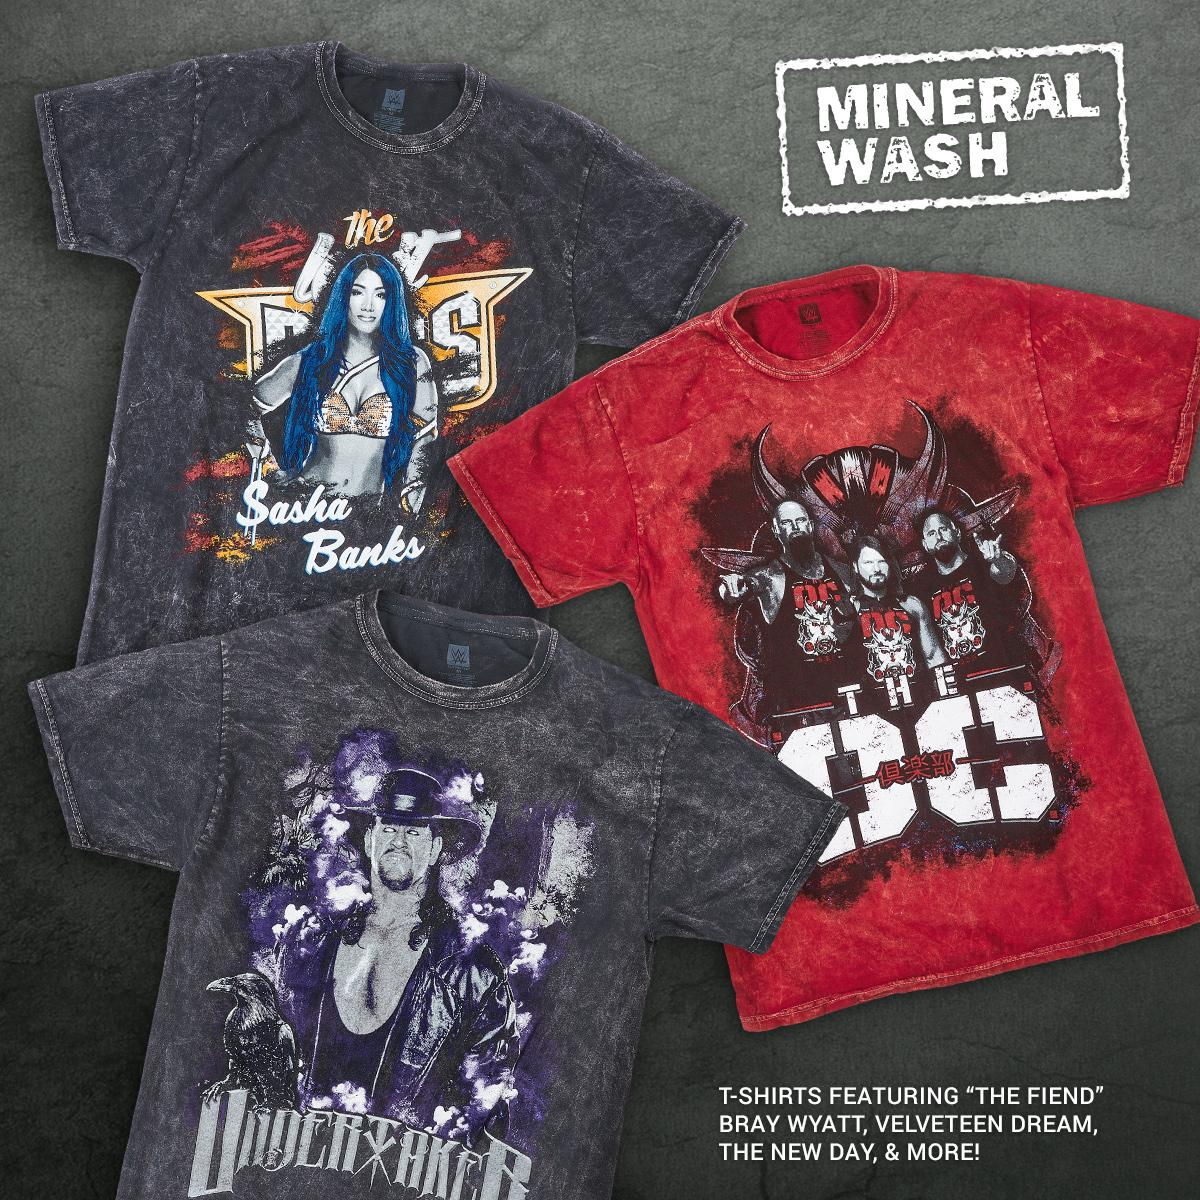 This collection features a rustic, allover #mineralwash that gives an edgy denim look to our Superstar t-shirts. No two garments are exactly alike so enjoy each for its own uniqueness! Featuring #TheOC, #SashaBanks, #Undertaker & more! #WWE #WWEShop